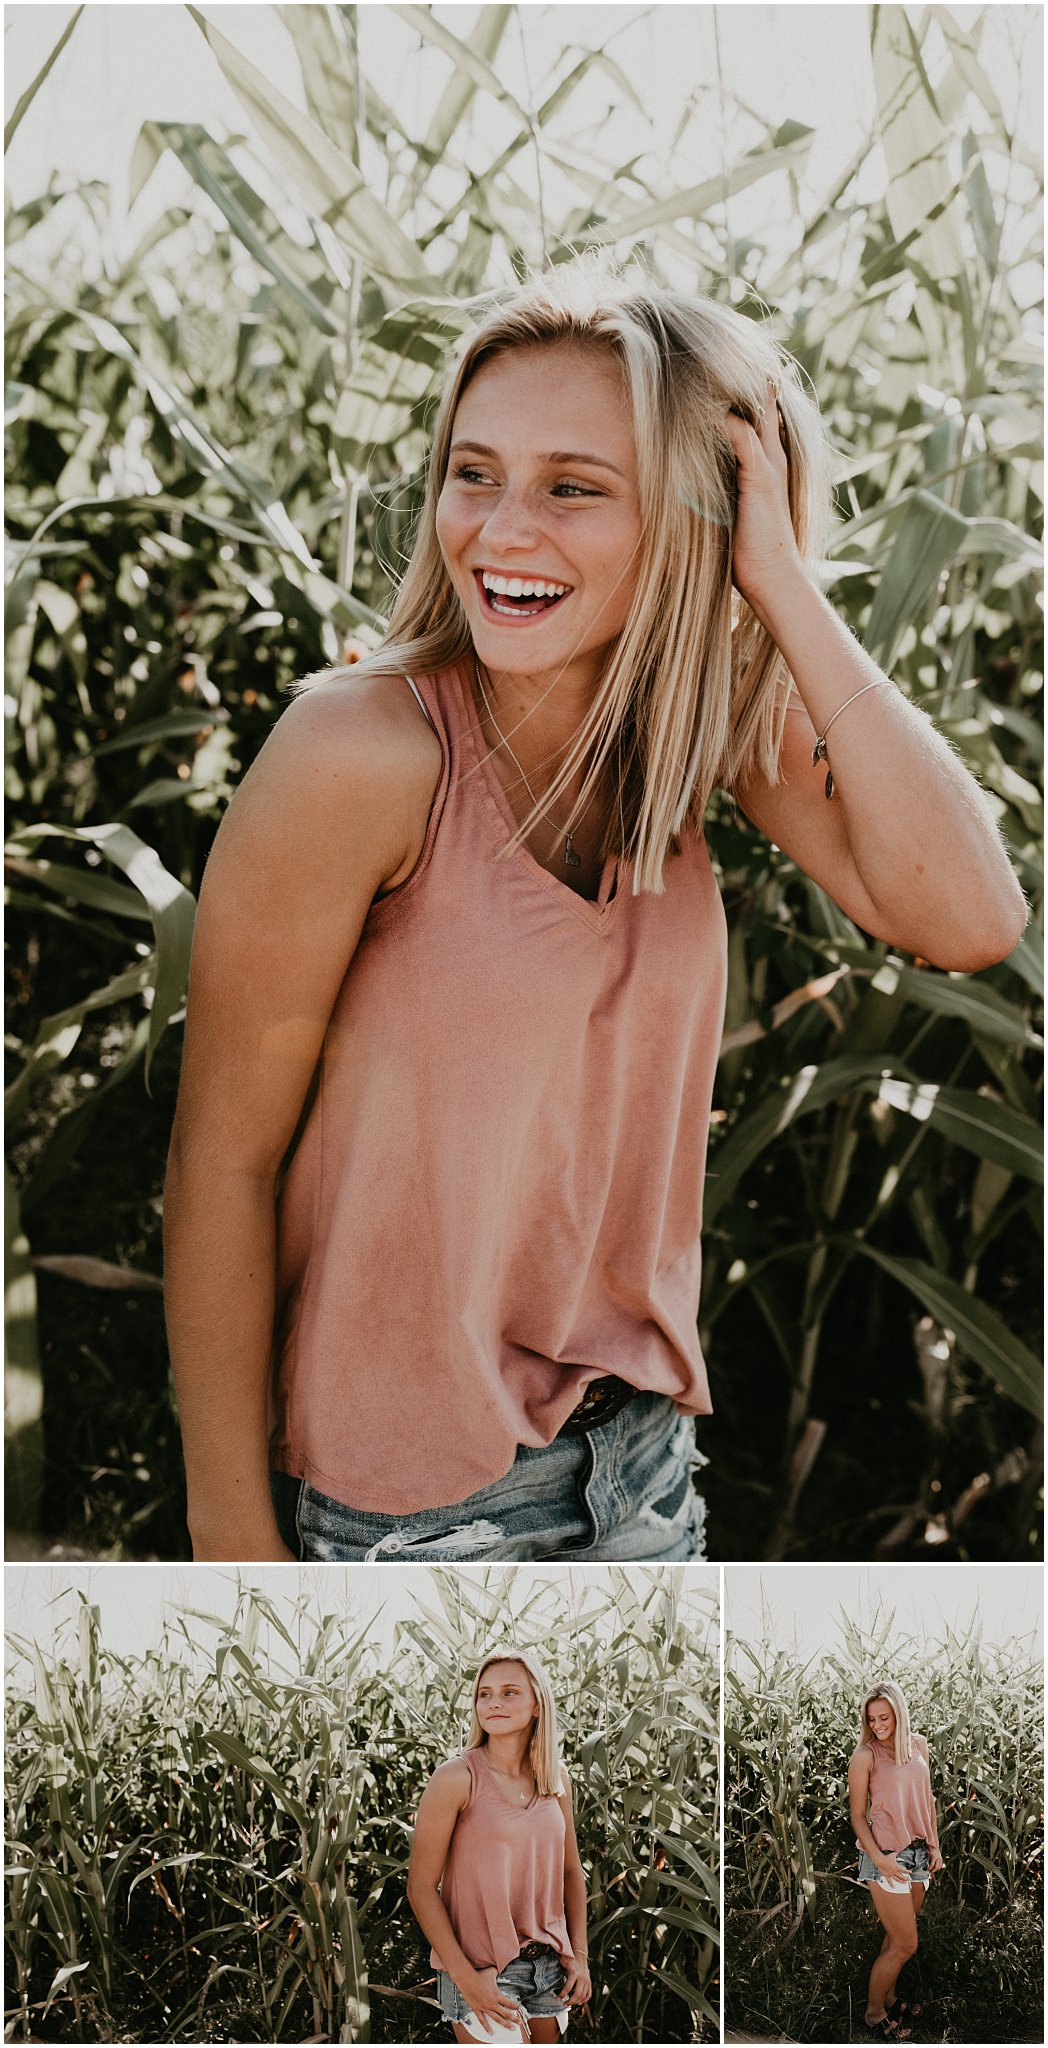 Boise Senior Photographer Makayla Madden Photography Corn Field Kuna Summer Senior Session Location Ideas Kuna High Brooke Ray Laughter Fun